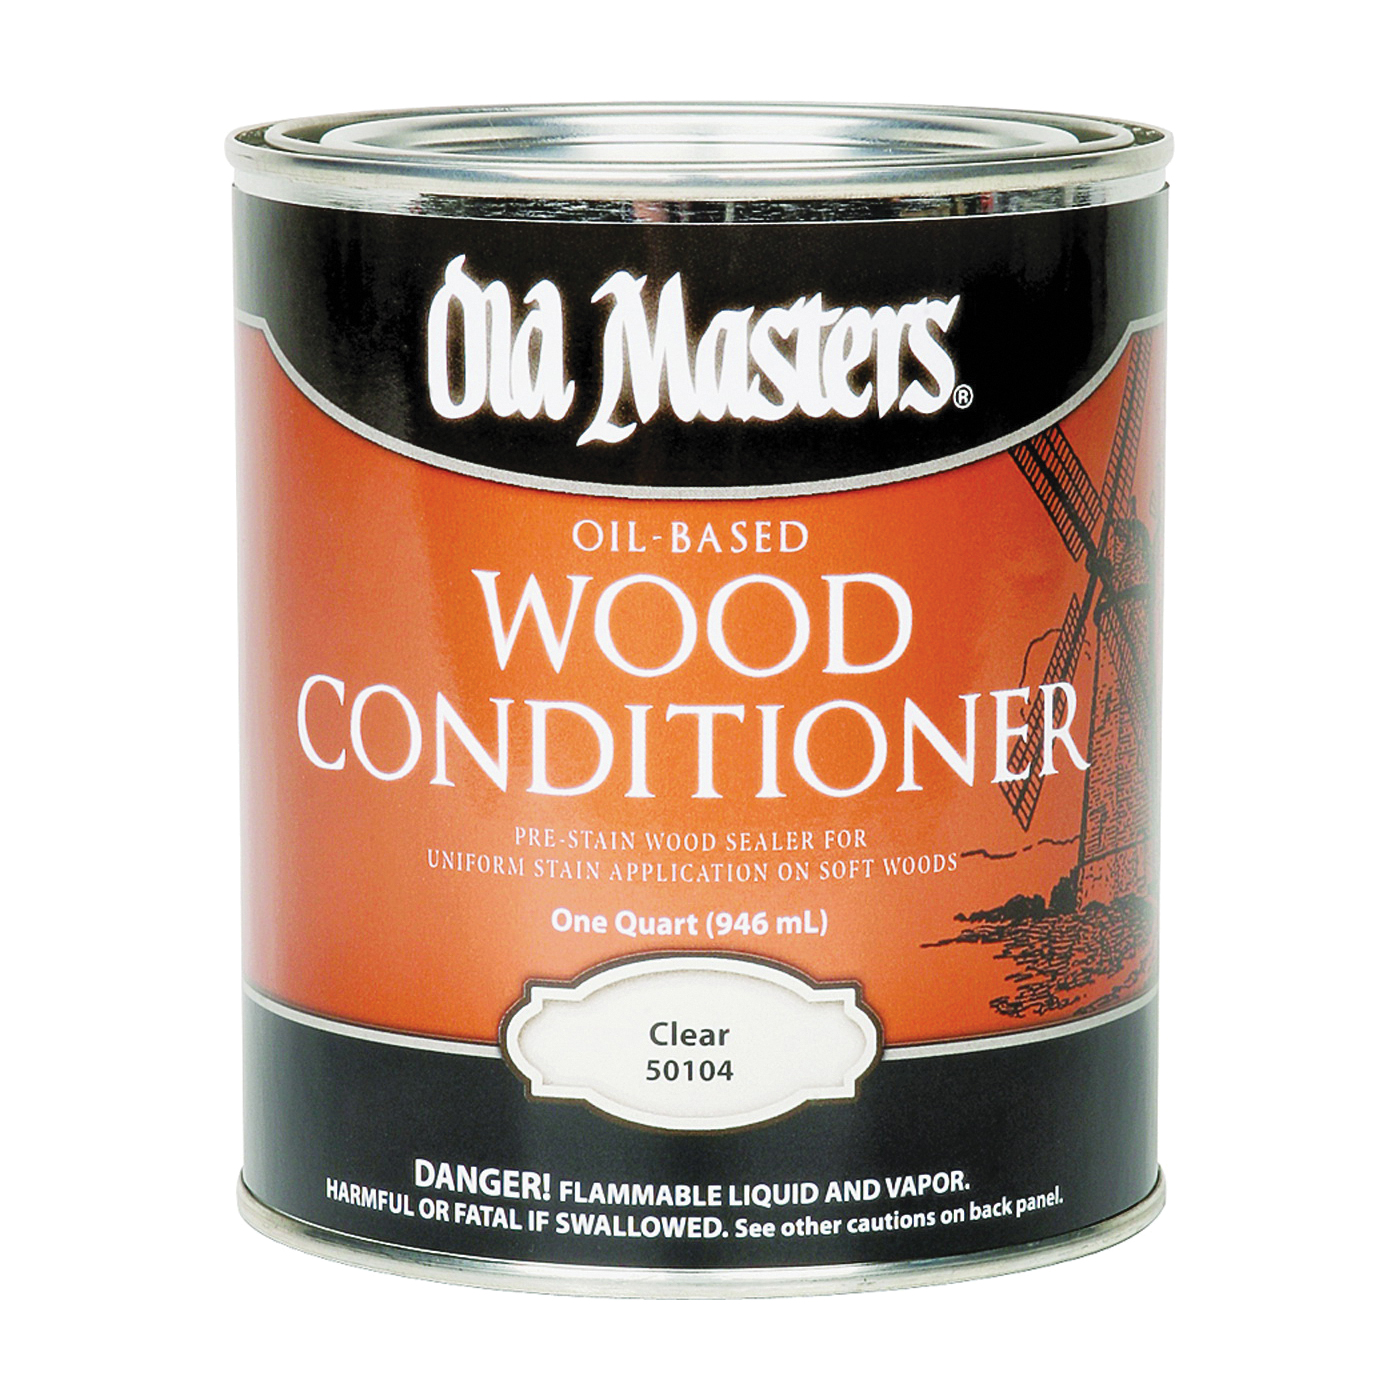 Picture of Old Masters 50104 Wood Conditioner, Clear, Liquid, 1 qt, Can